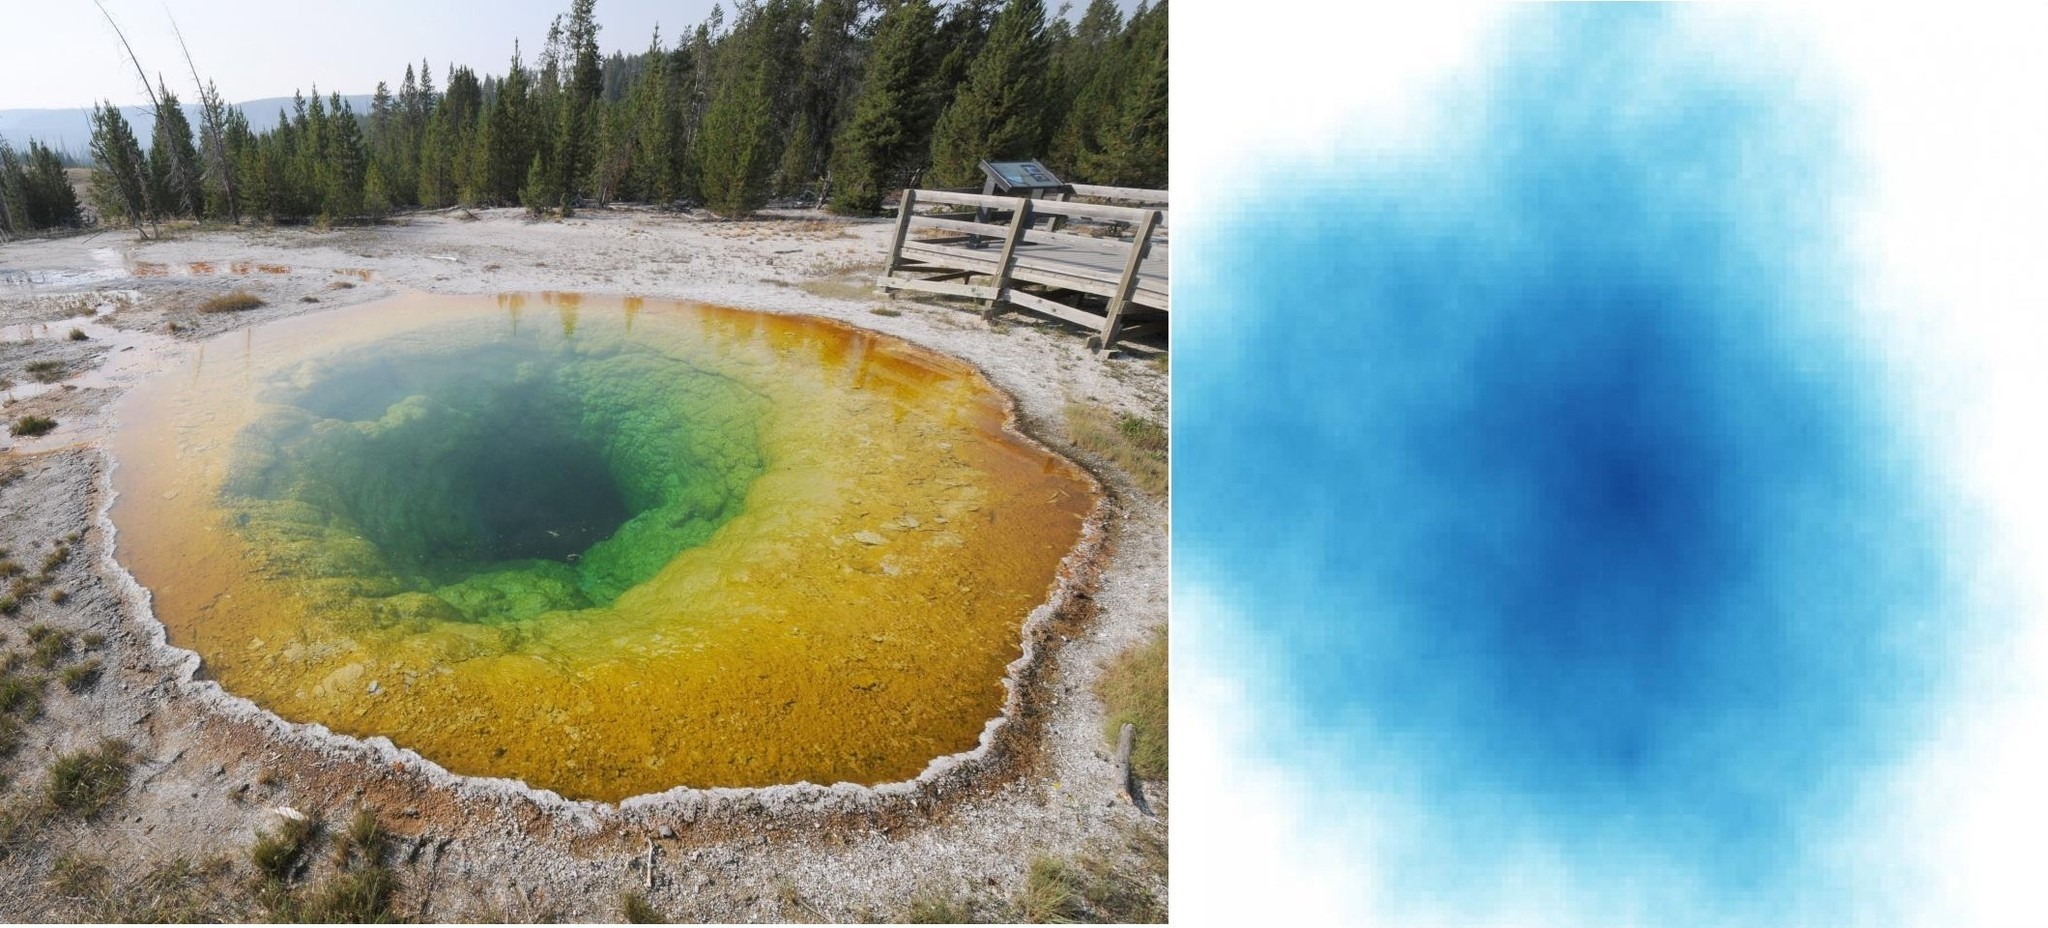 Putting the color in Yellowstone's famed thermal springs